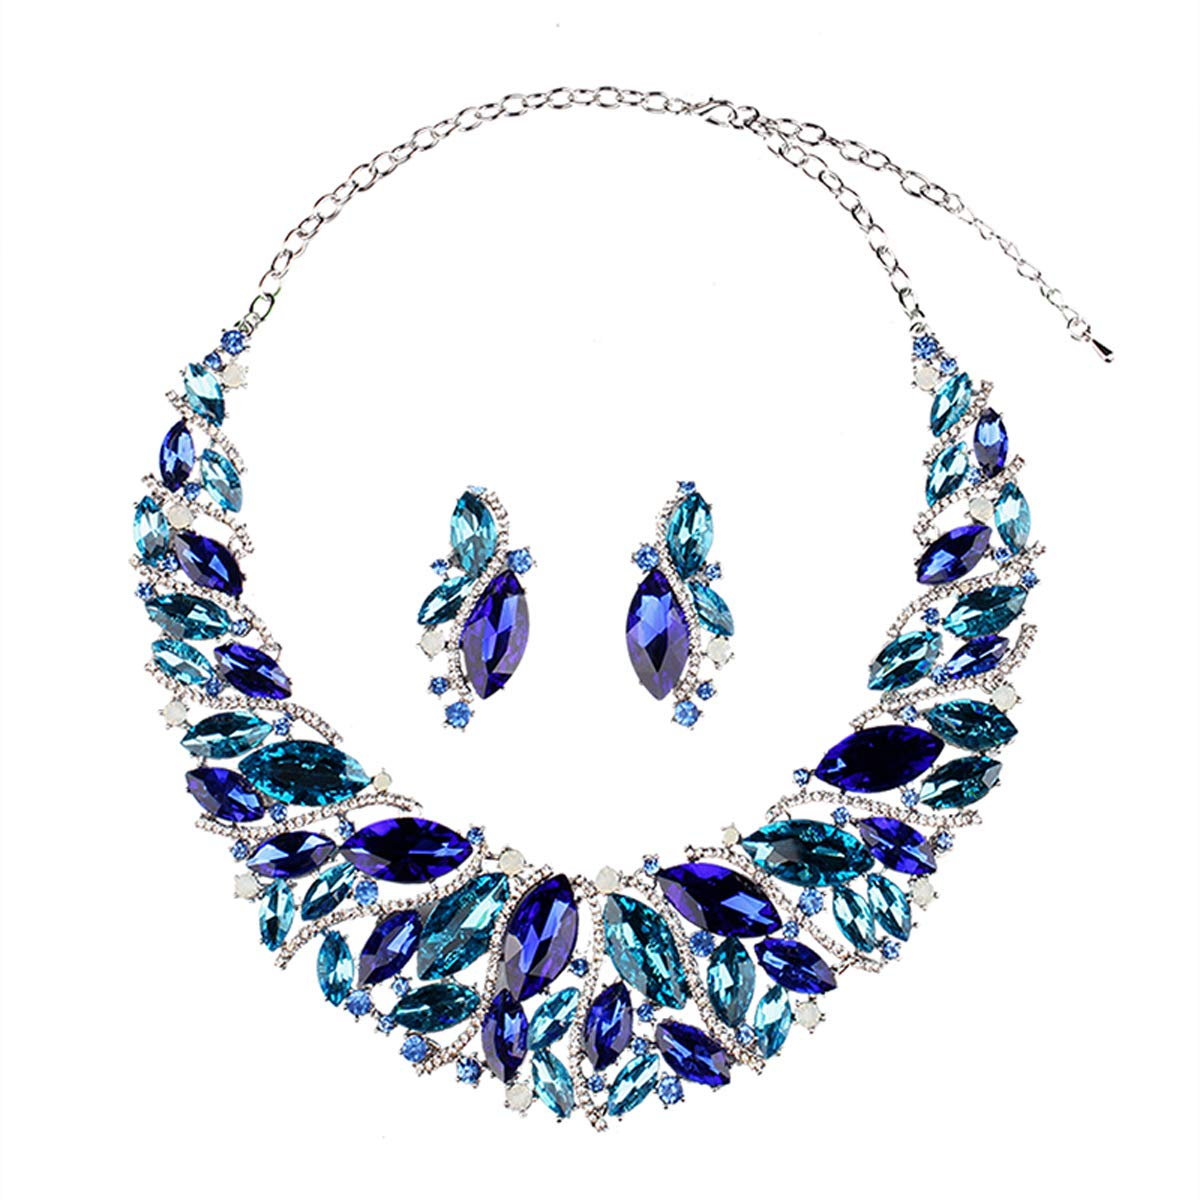 Hamer Bridal Link Costume Jewelry Crystal Choker Pendant Bib Statement Chain Charm Necklace and Earrings Sets (Blue)